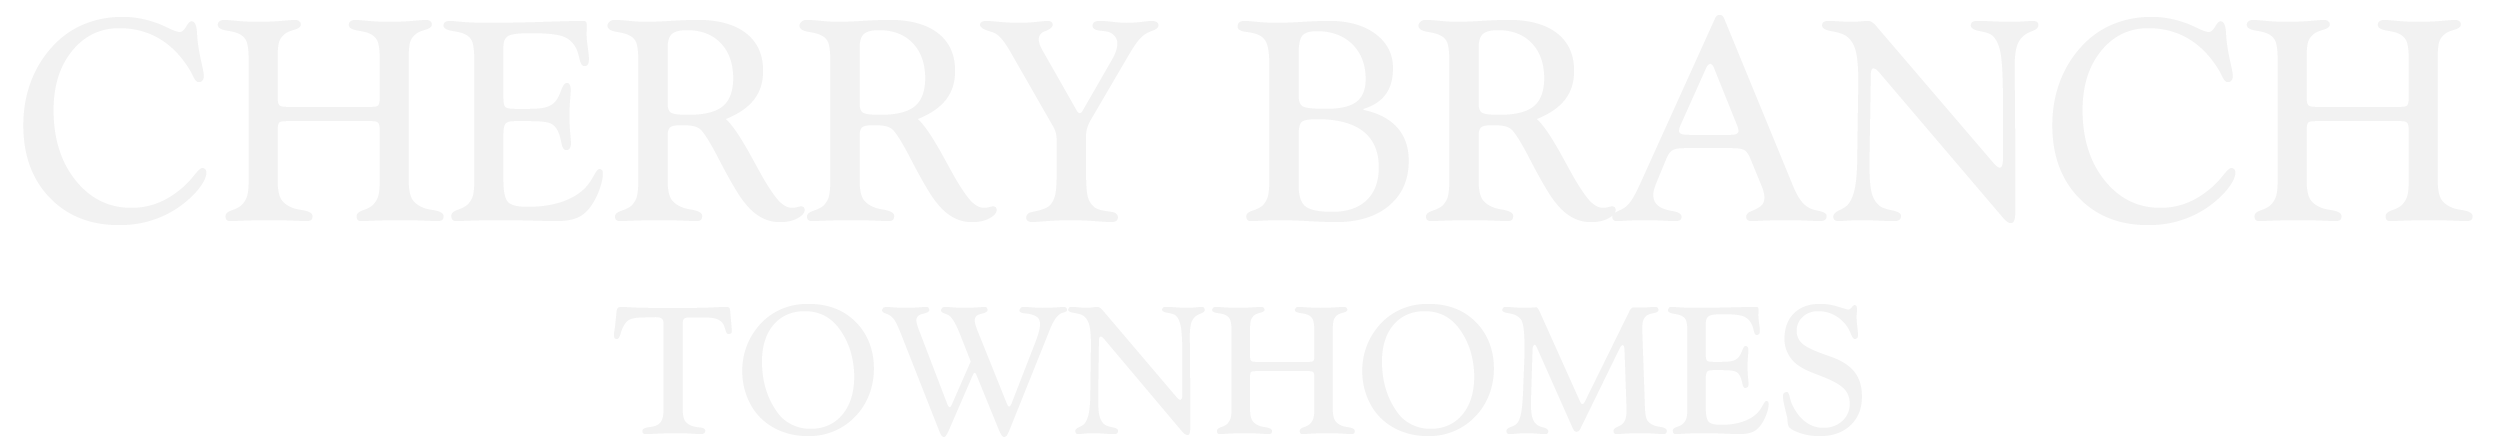 Cherry Branch Townhomes Logo